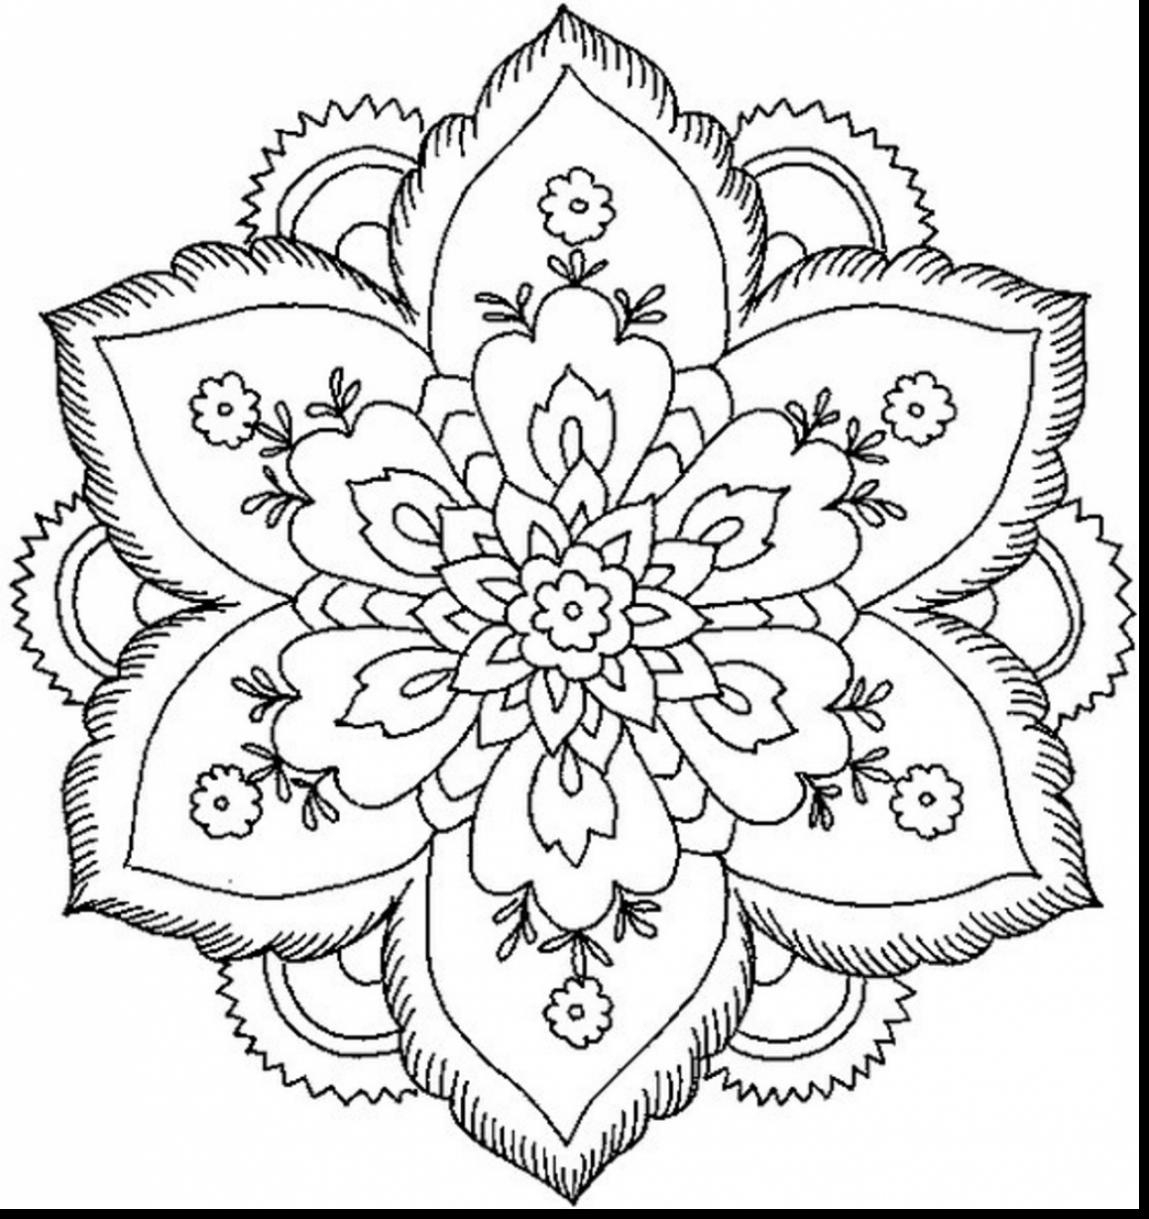 1149x1219 New Stunning Nature Flower Mandala Coloring Pages With Coloring